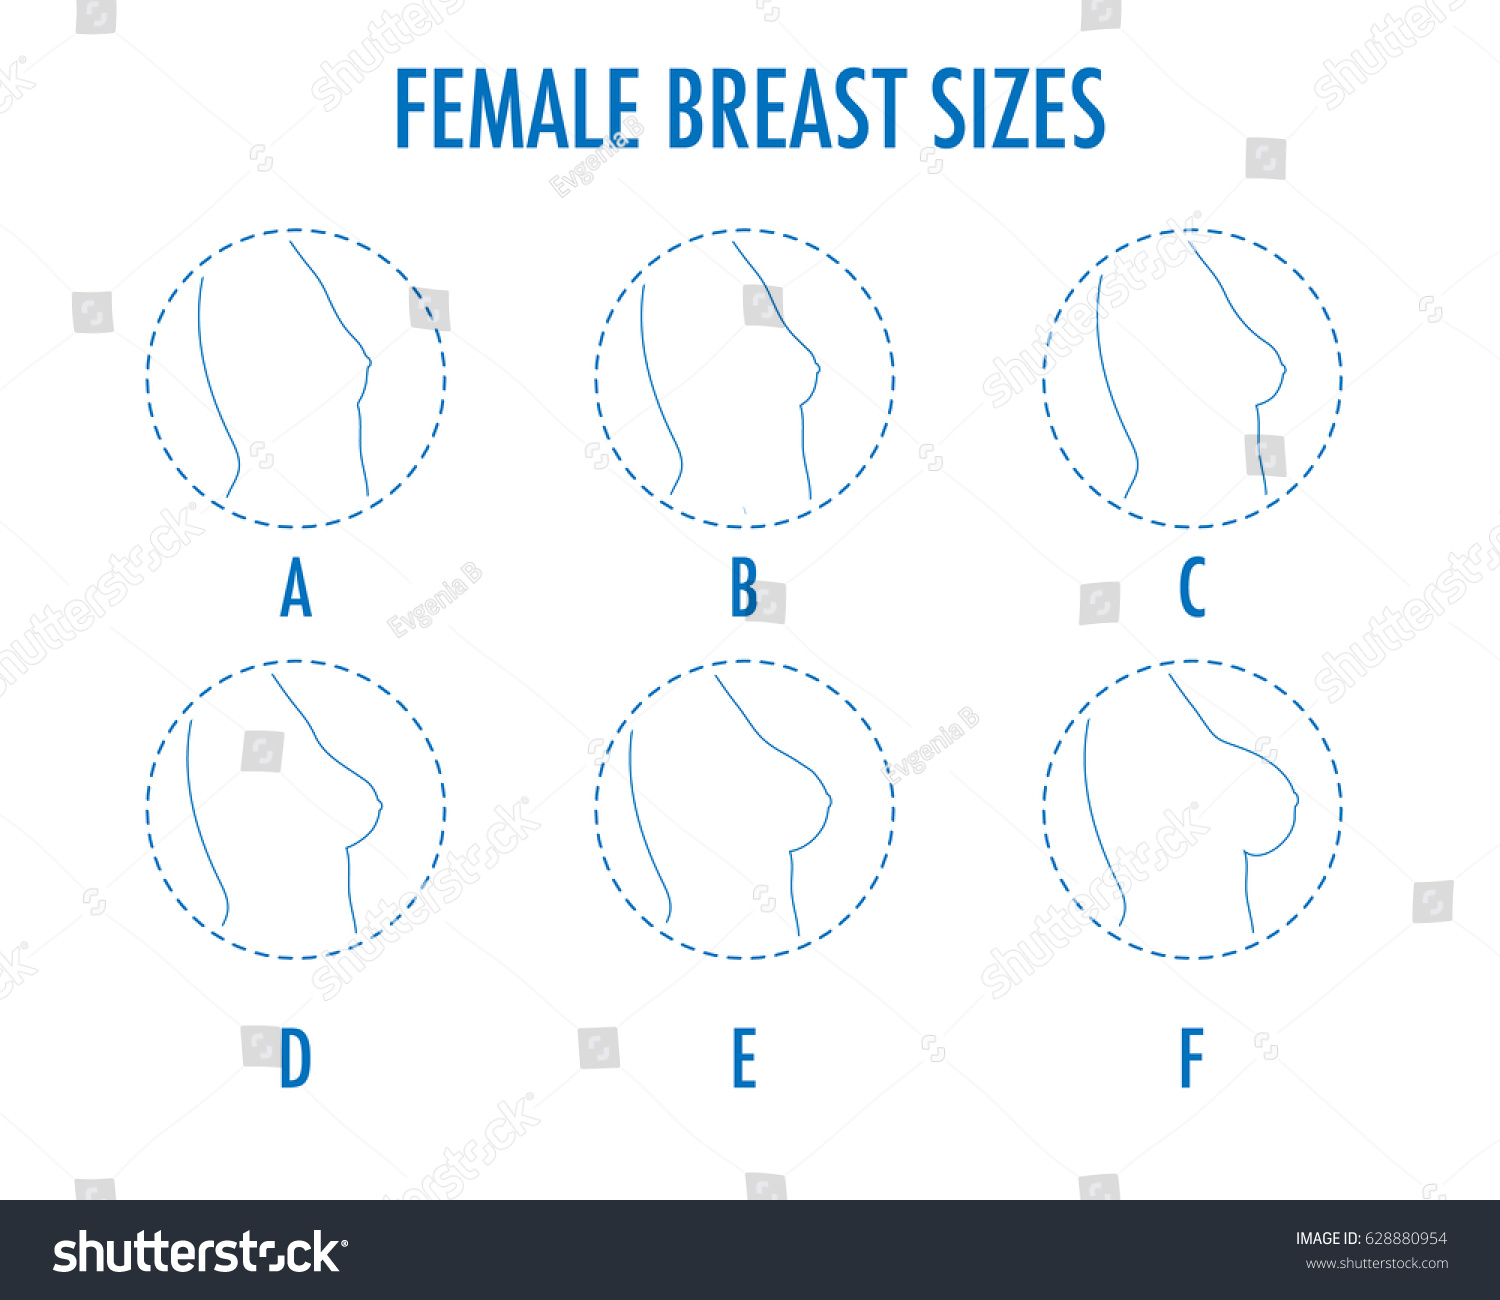 Breast size from a to b